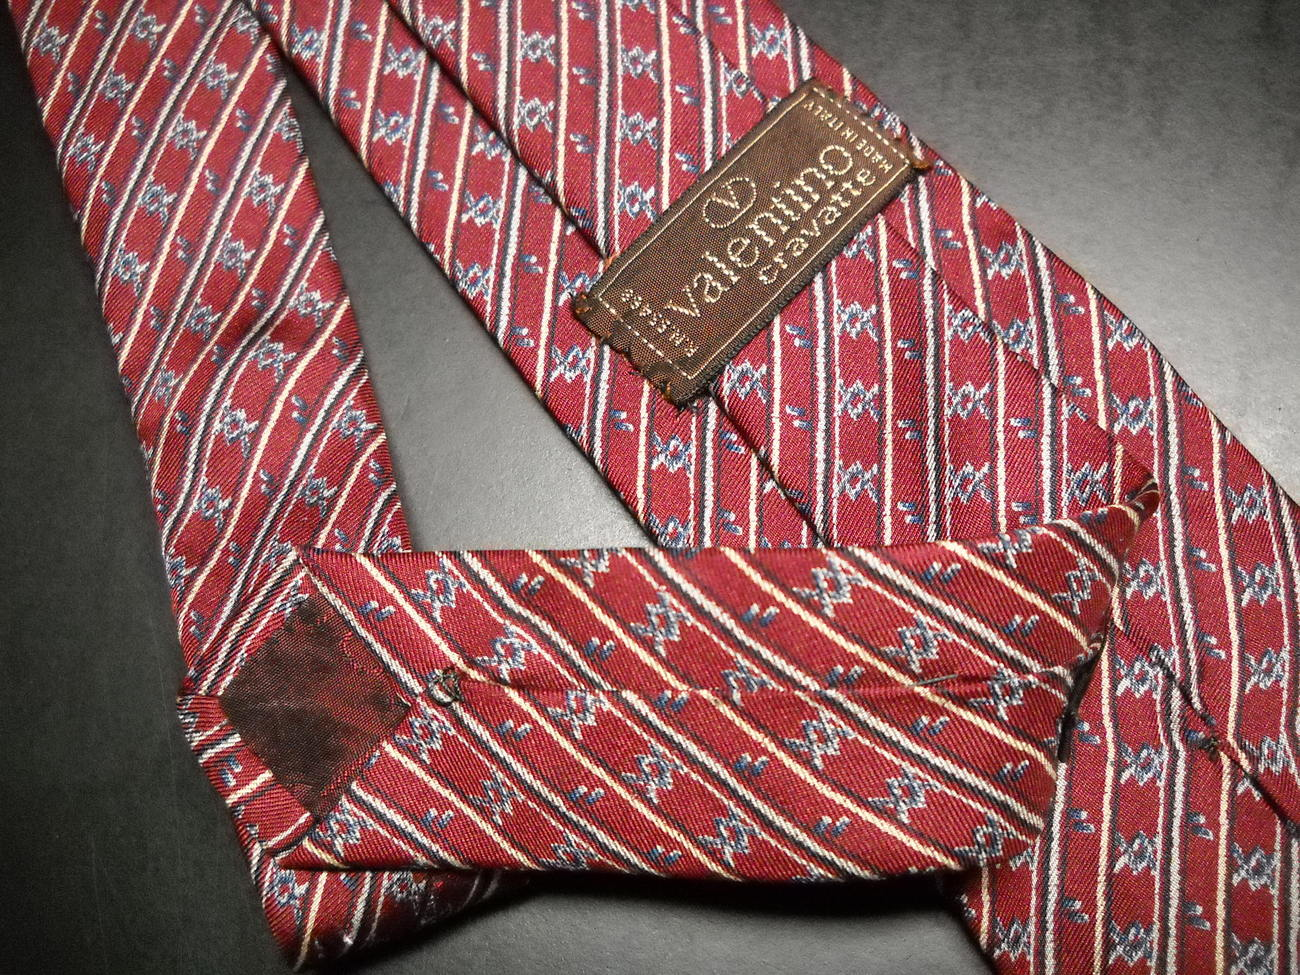 Valentino Cravates Neck Tie Silk Hand Made Italy Diagonal Stripes Brownish Reds